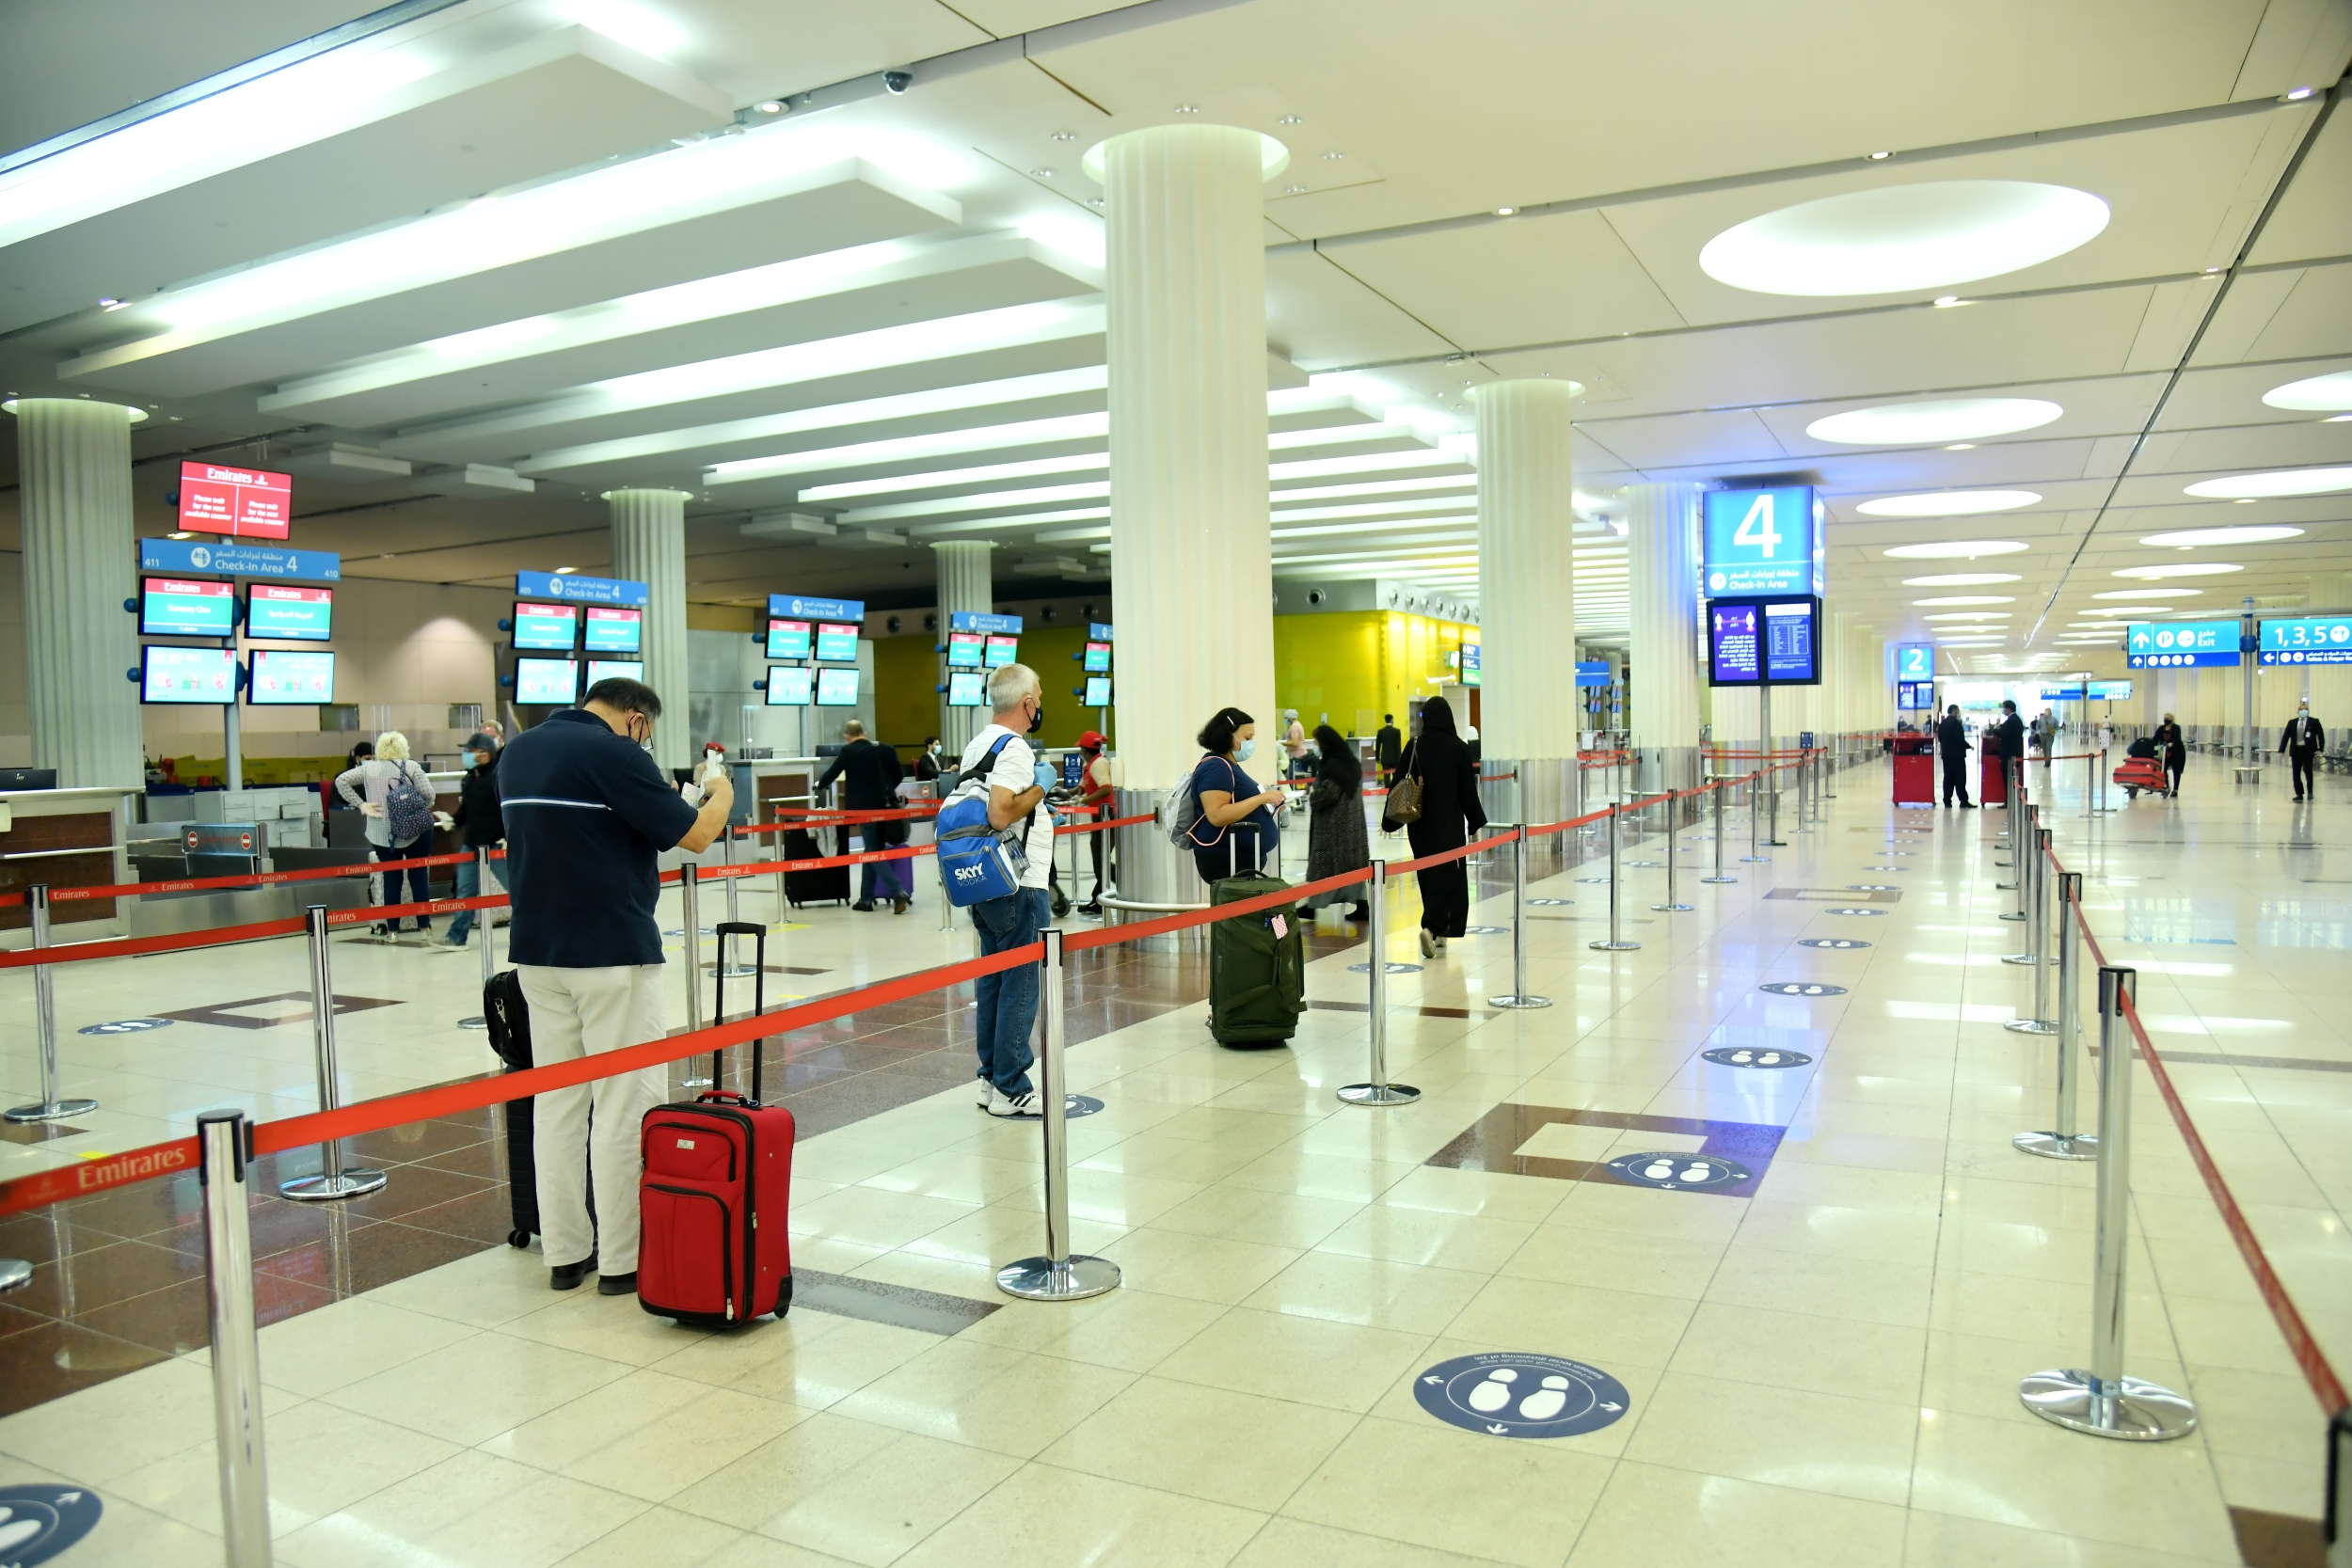 Dubai Airports: strict procedures when traveling until a vaccine or treatment is found for Corona